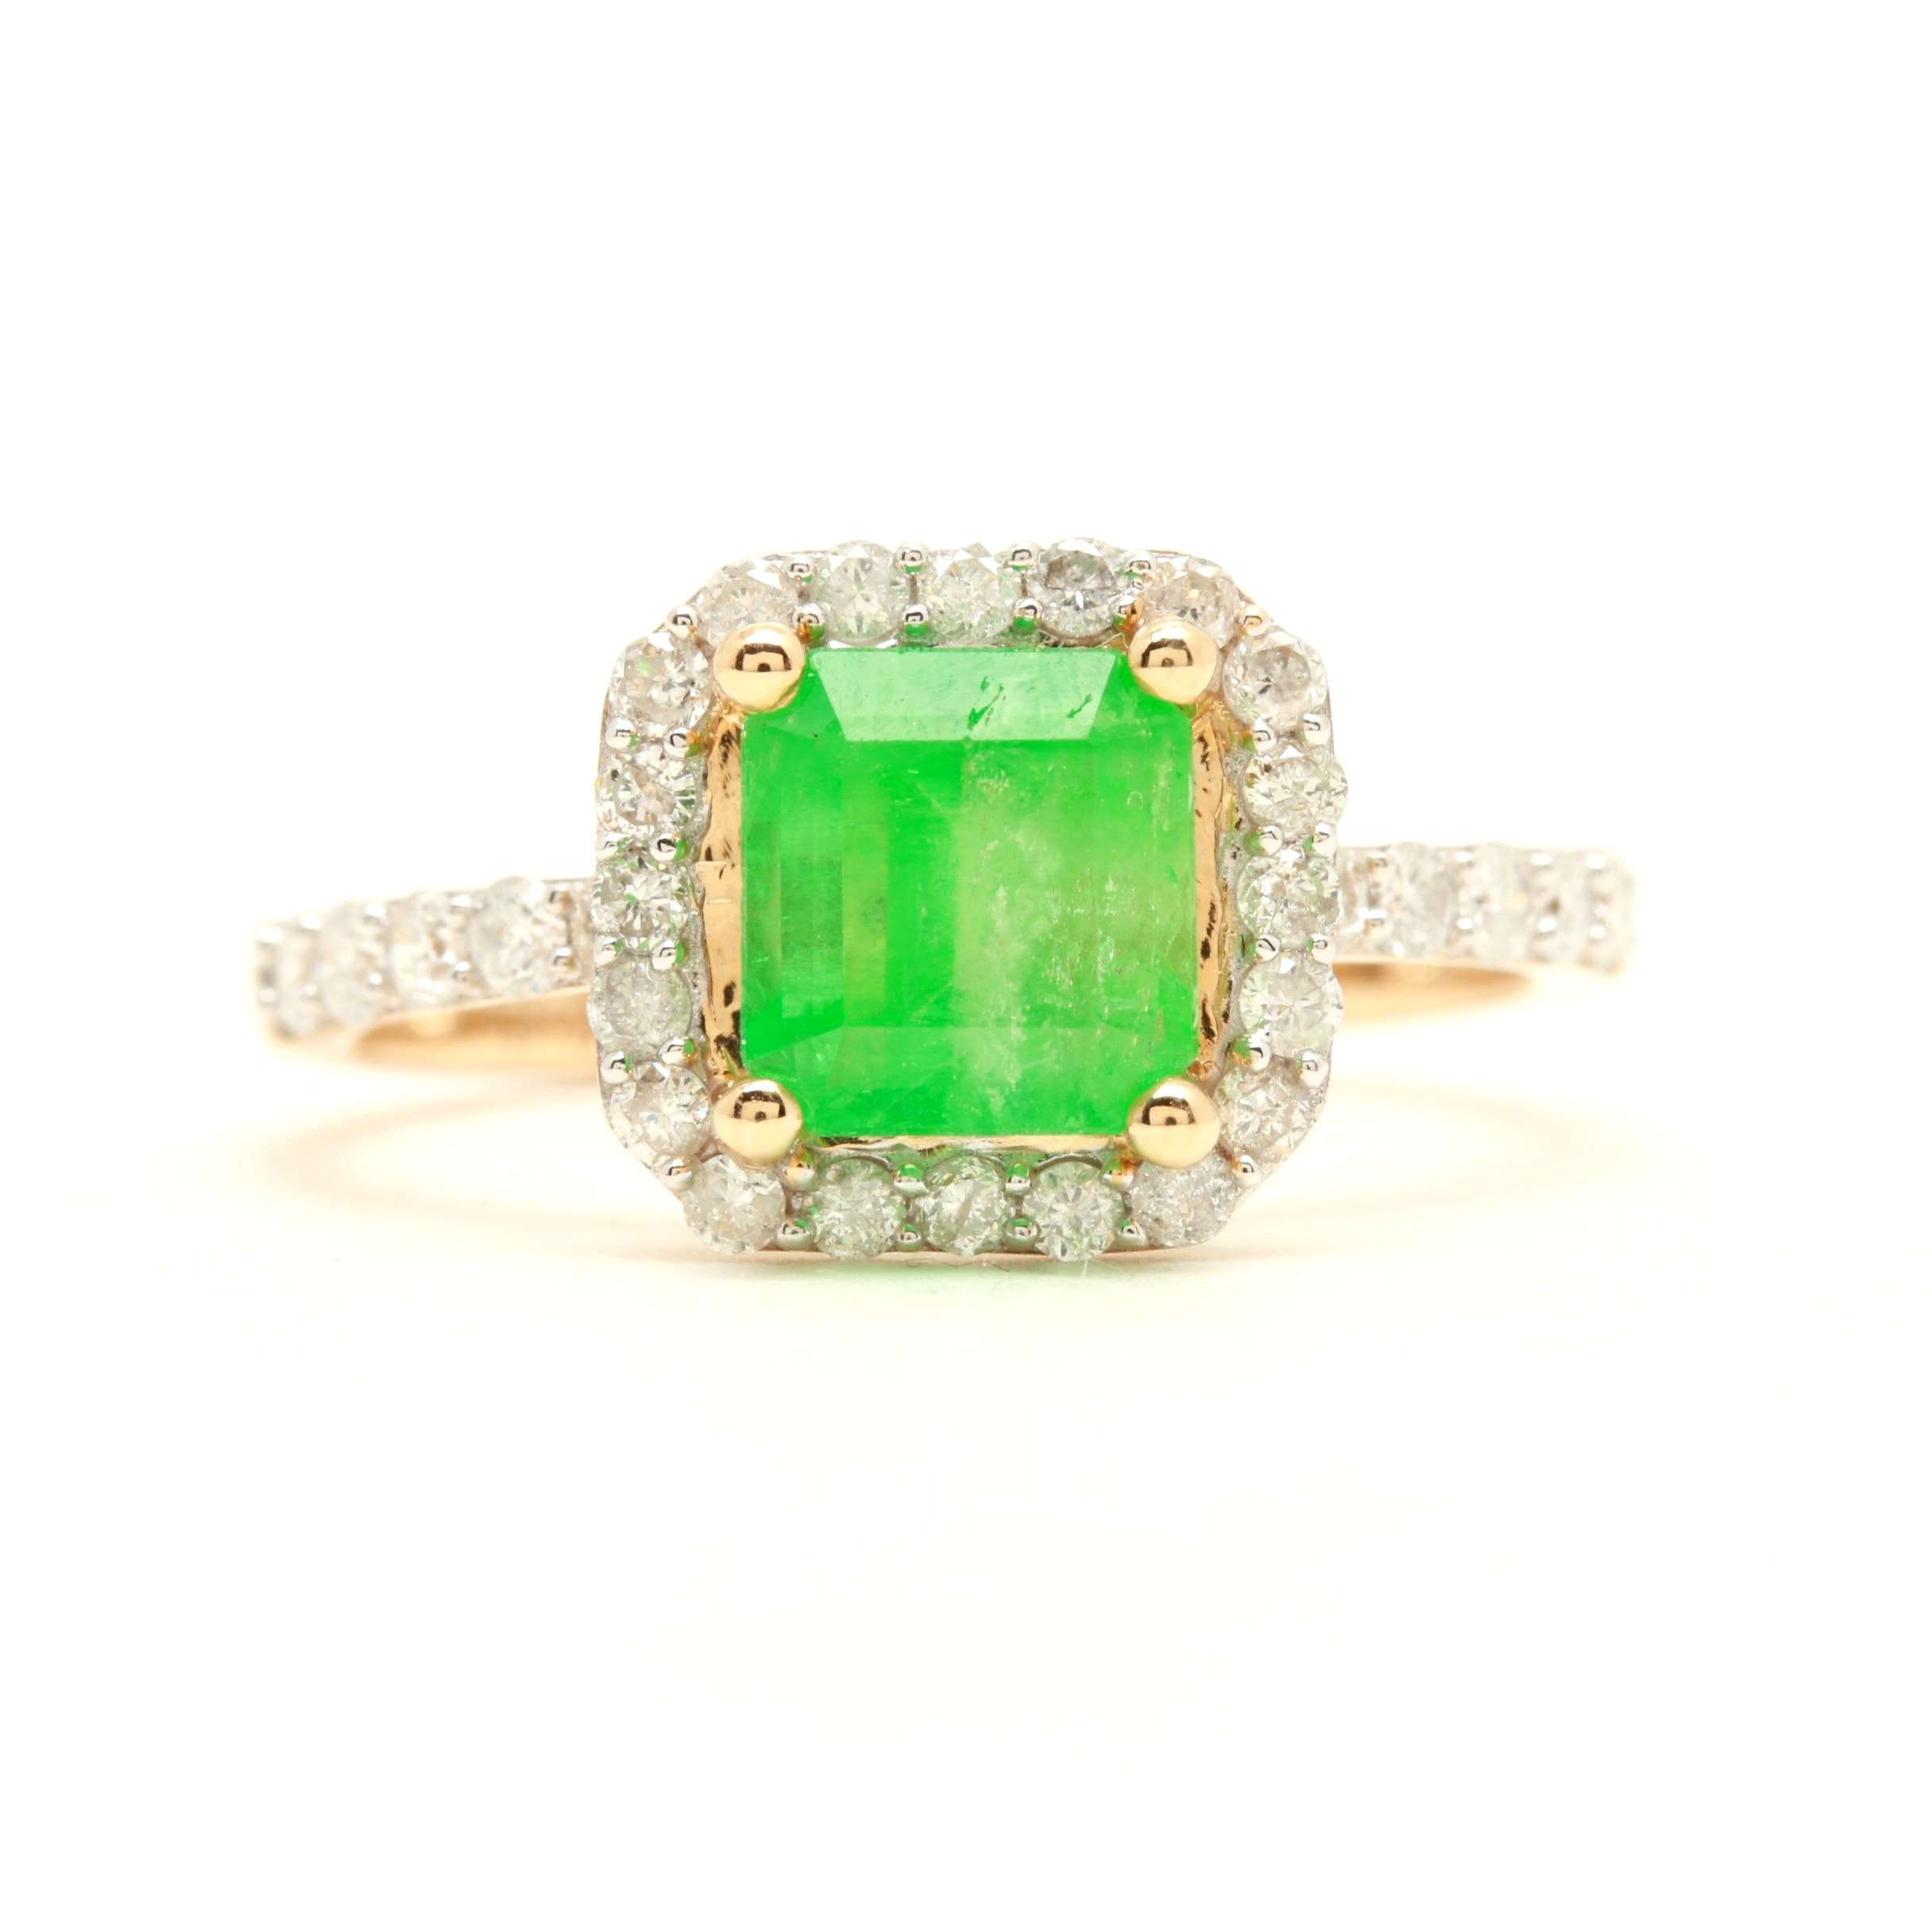 14K Yellow Gold 1.37 CT Emerald and Diamond Ring